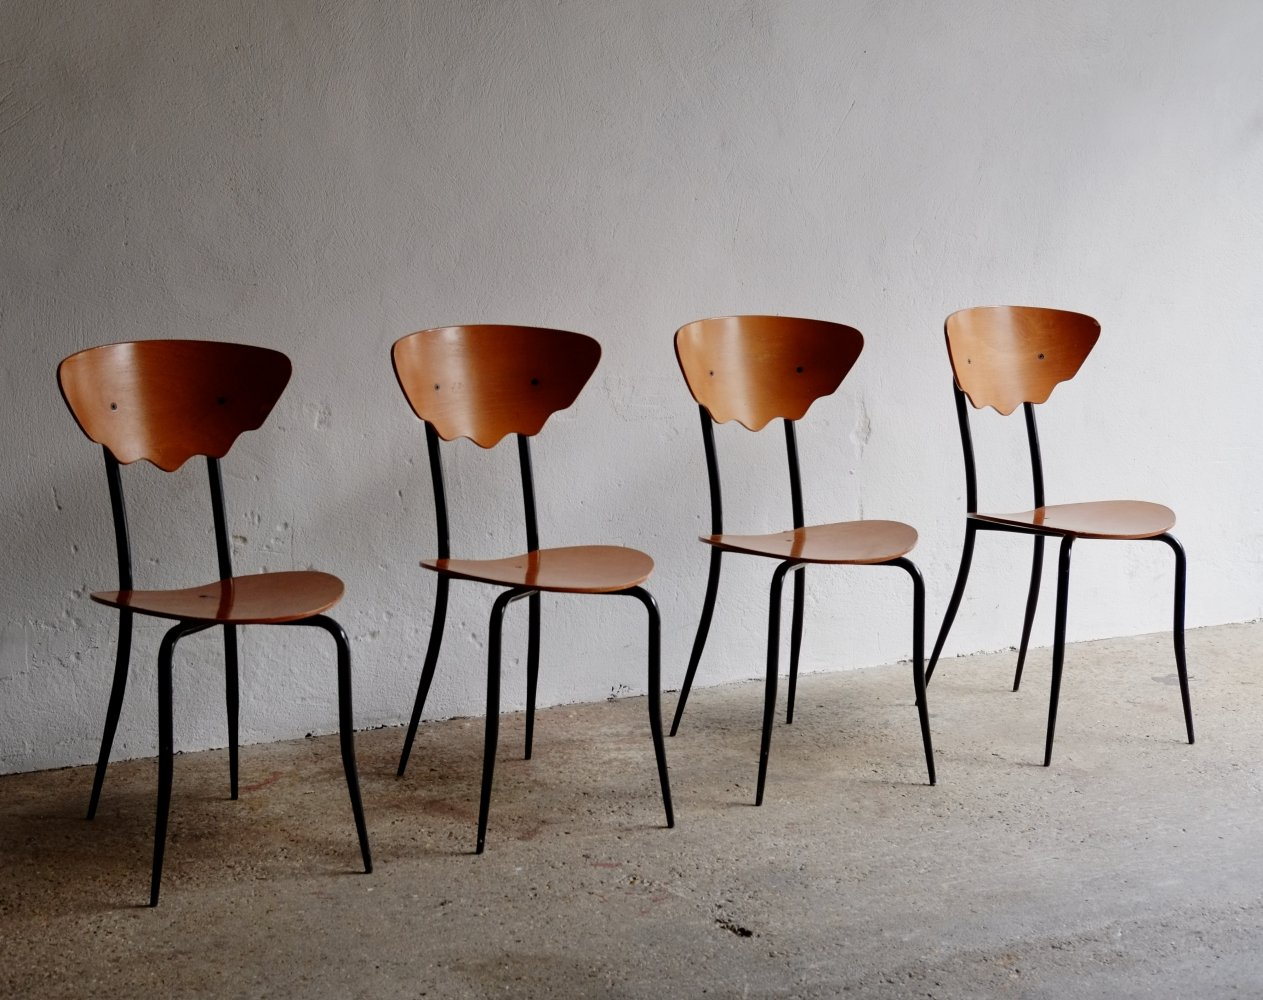 Set of 4 Plywood Chairs, 1980